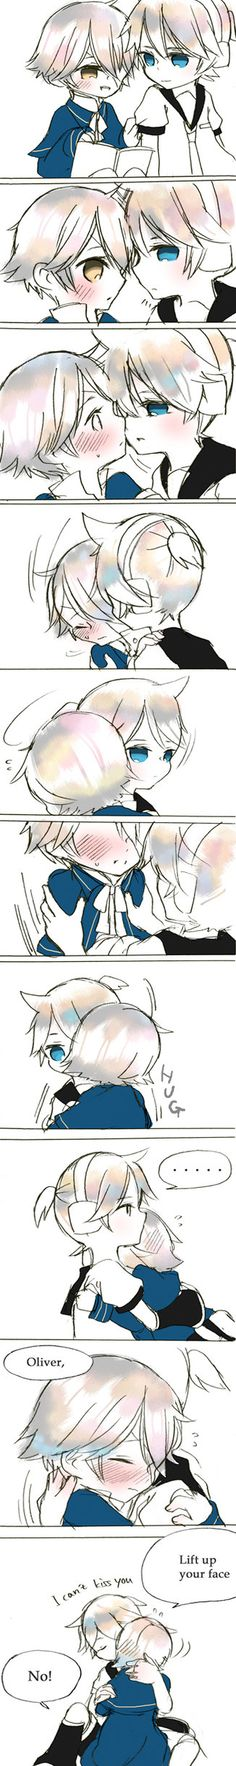 Len x Oliver  Just picking up Vocaloid, and I love this ship. (Kyaa~ So cute! >w< -Shailene)